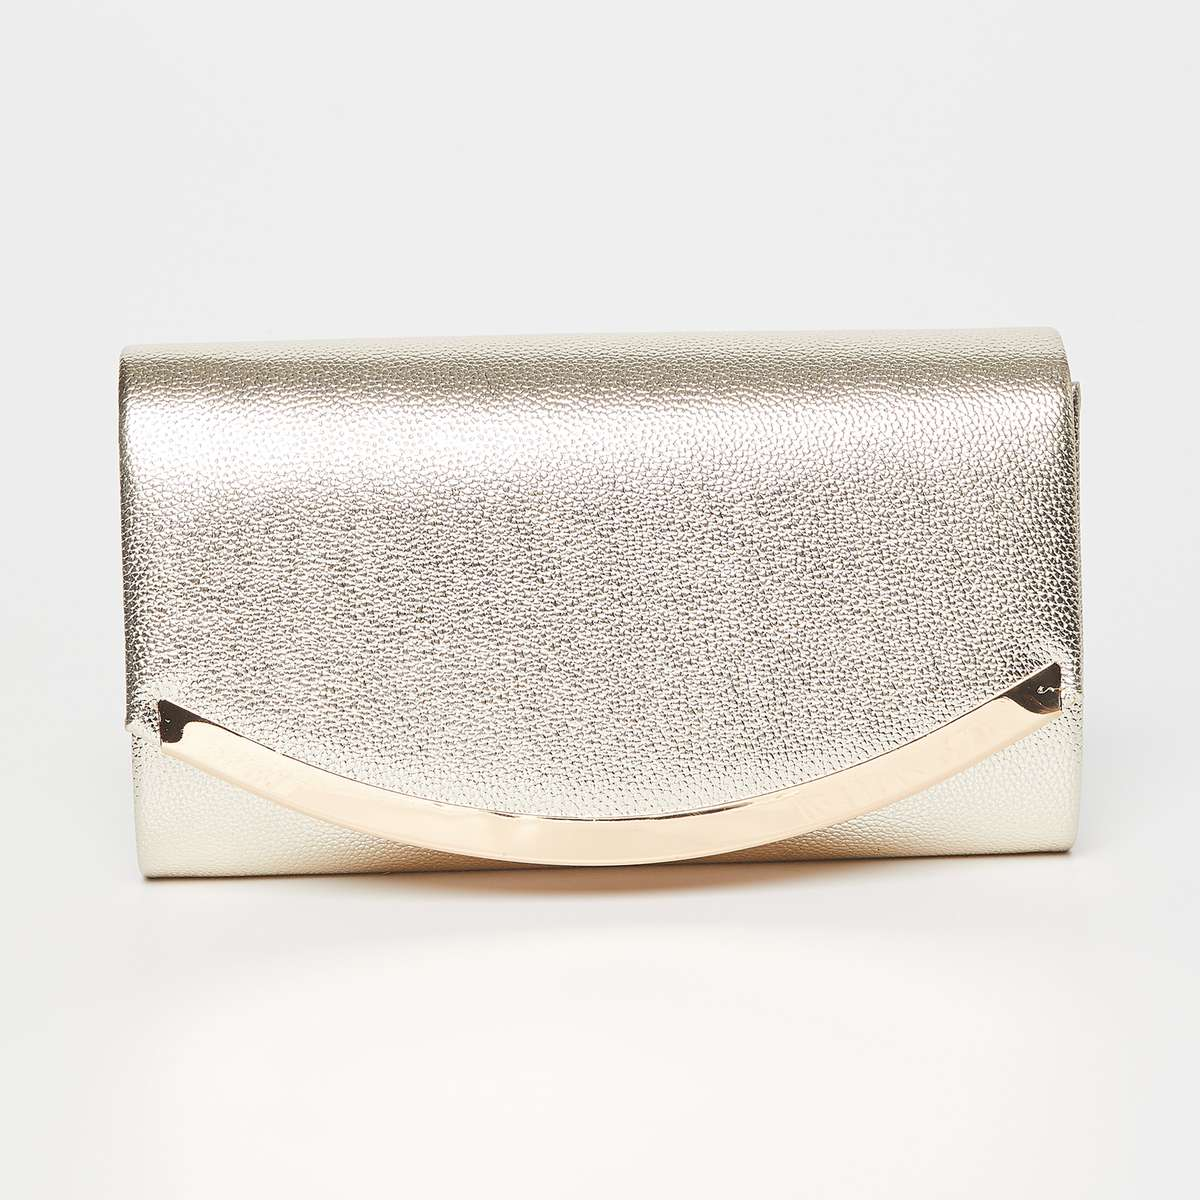 3.CODE Shimmery Evening Clutch with Metallic Chain